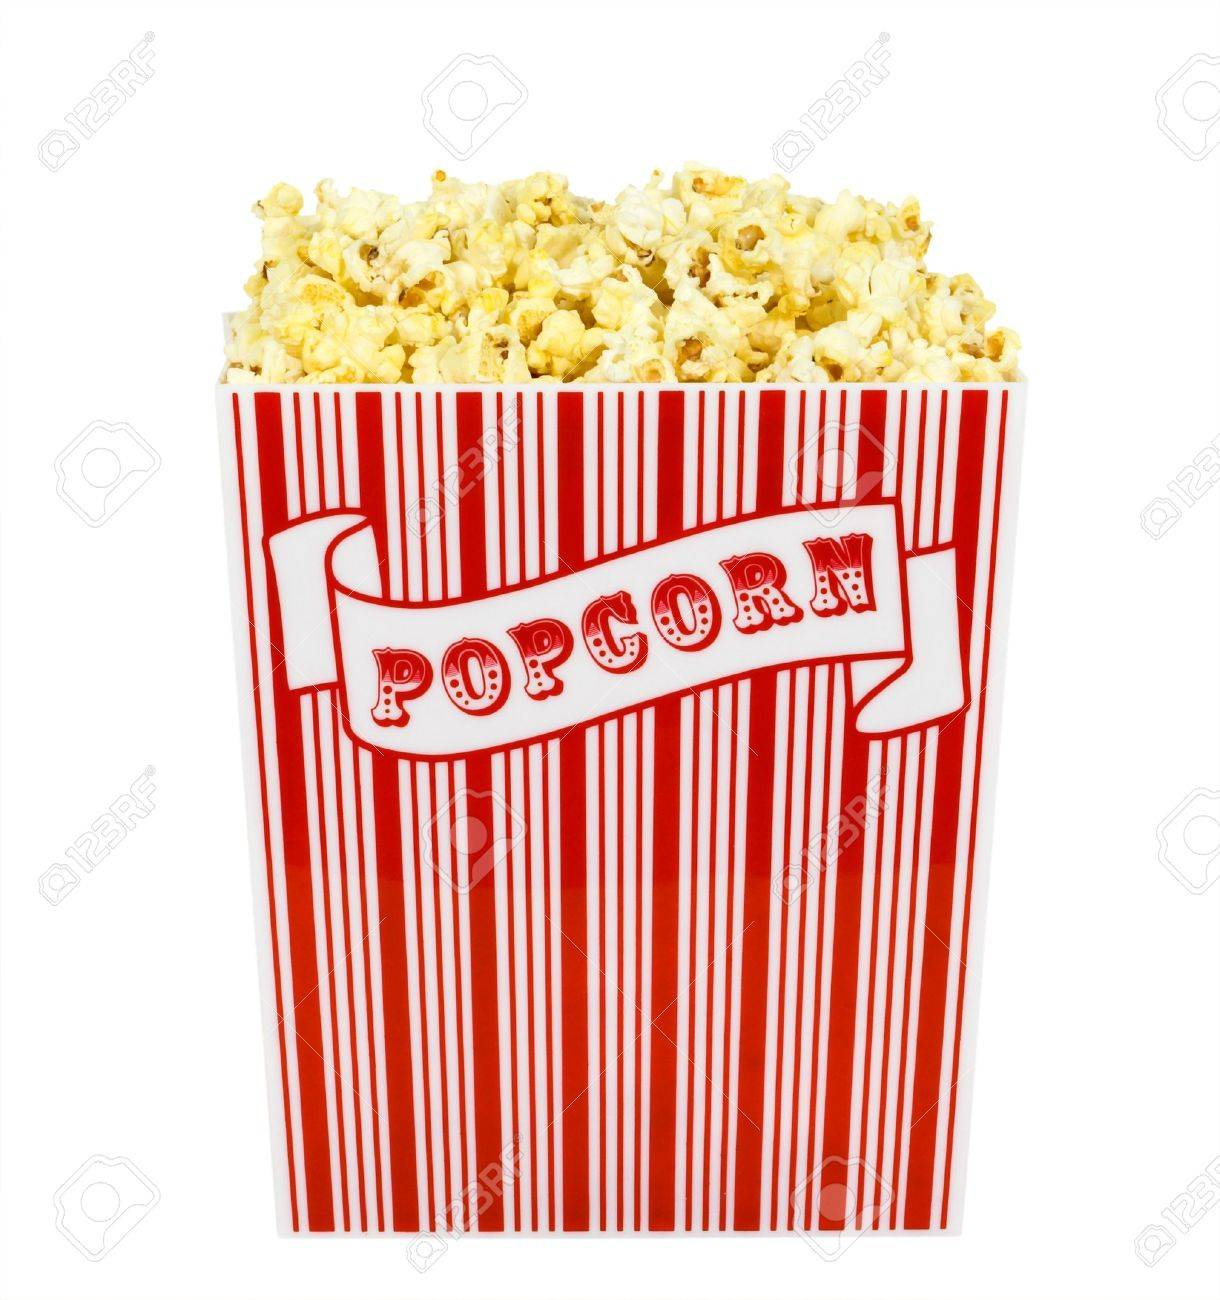 A container of popped popcorn isolated on a white background Stock Photo - 749730